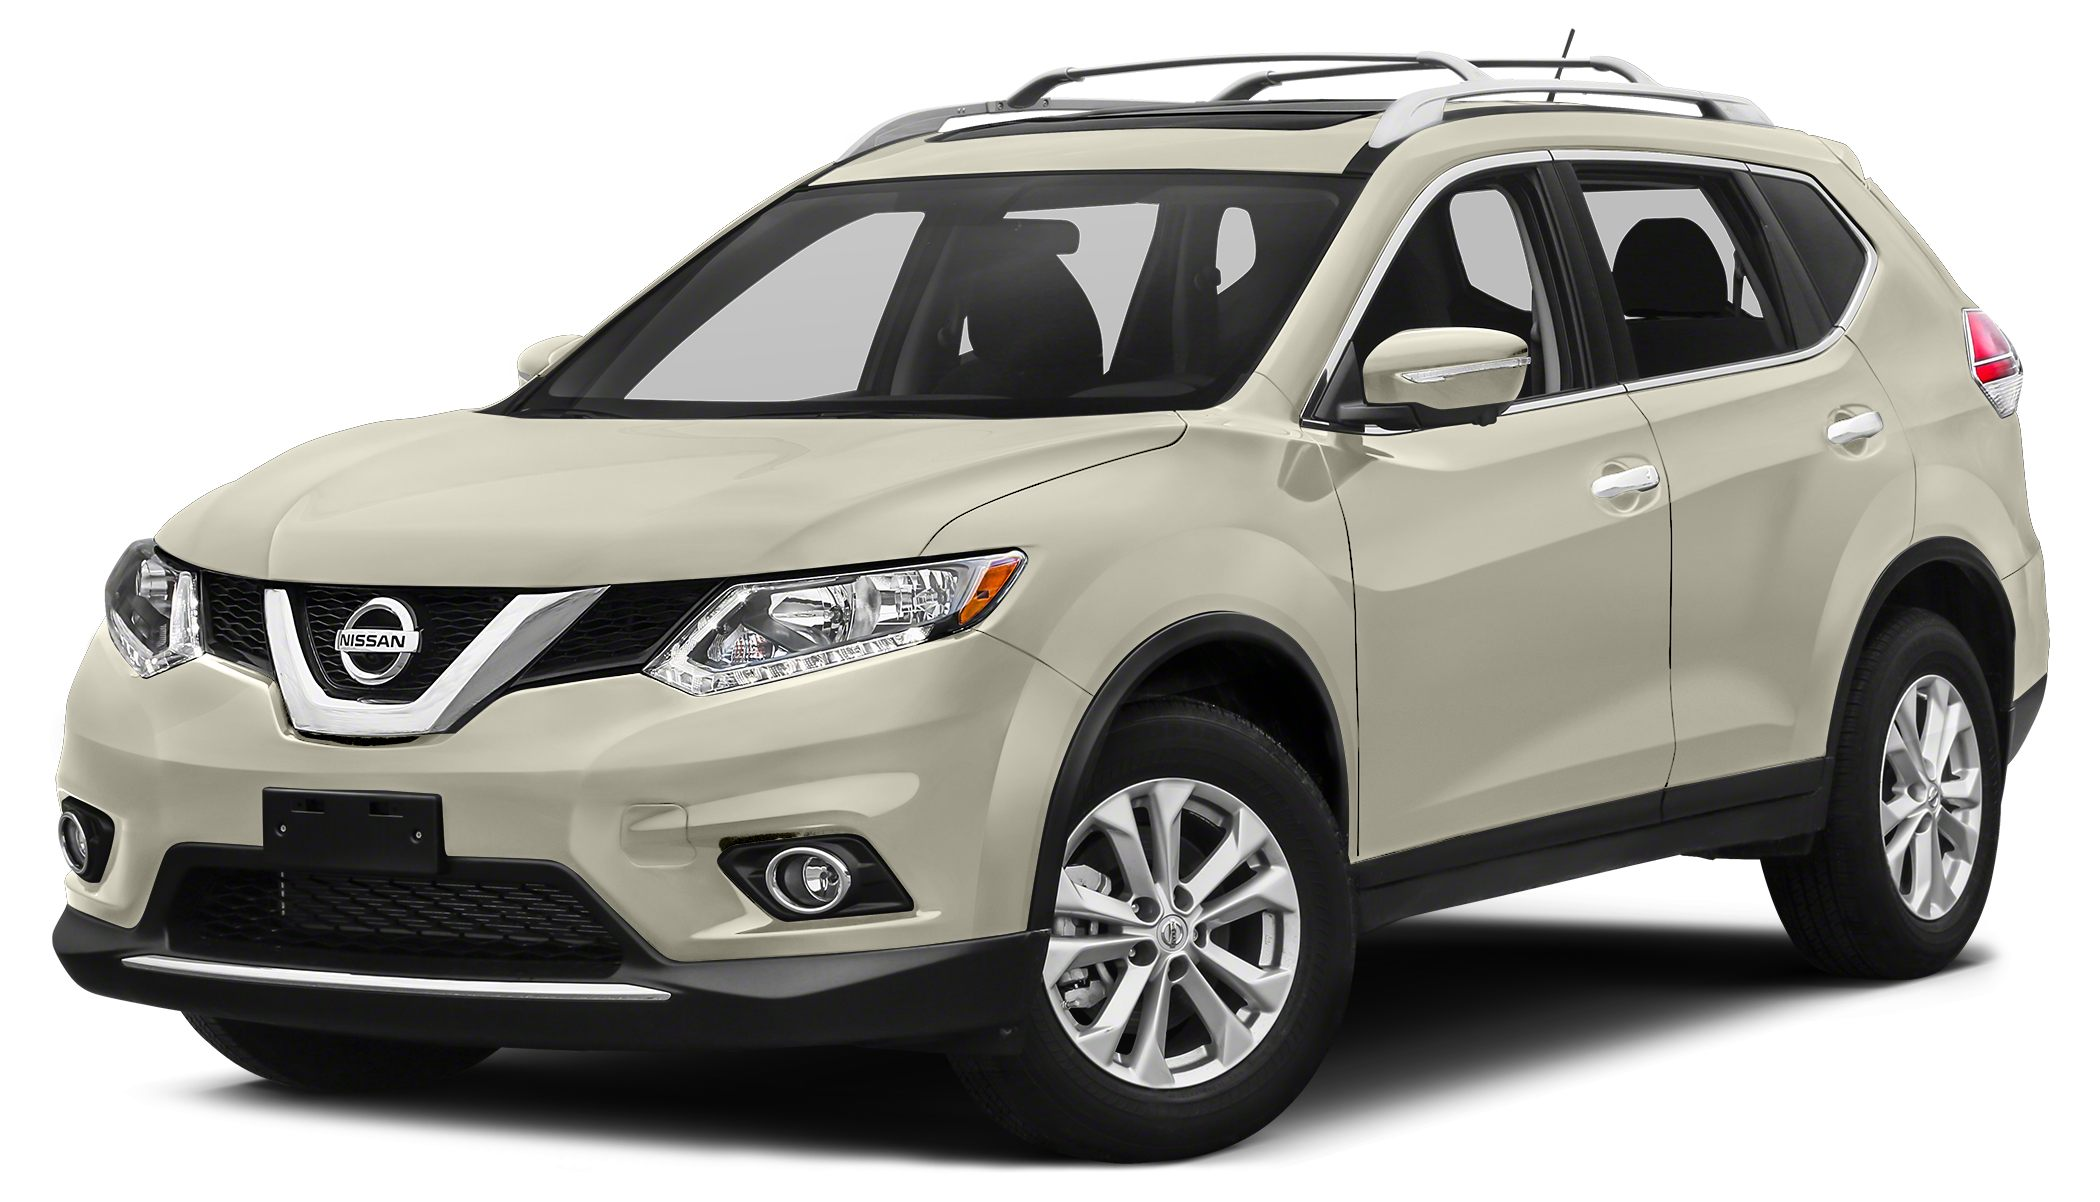 2014 Nissan Rogue SV The Nissan Rogue proves to be an excellent vehicle time and time again This